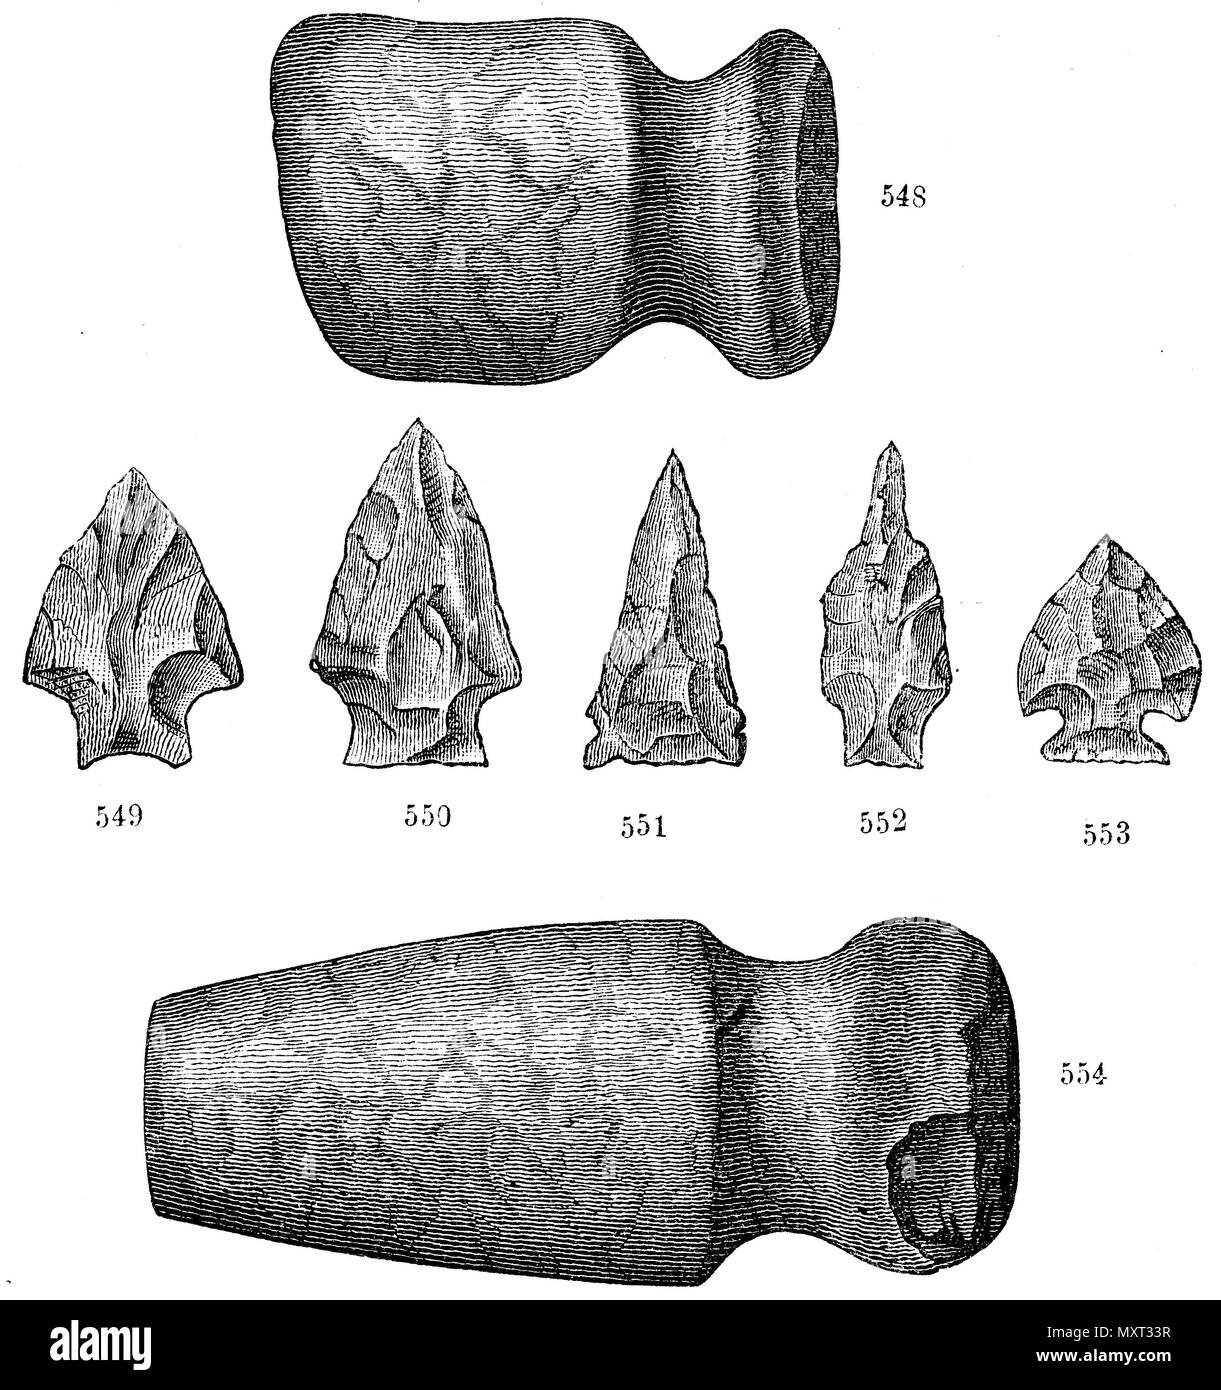 Indian stone tools from the shellfish of Keyport. 548, 554) Tomahawks, 549-553) Arrowheads and lance tips,   1874 - Stock Image